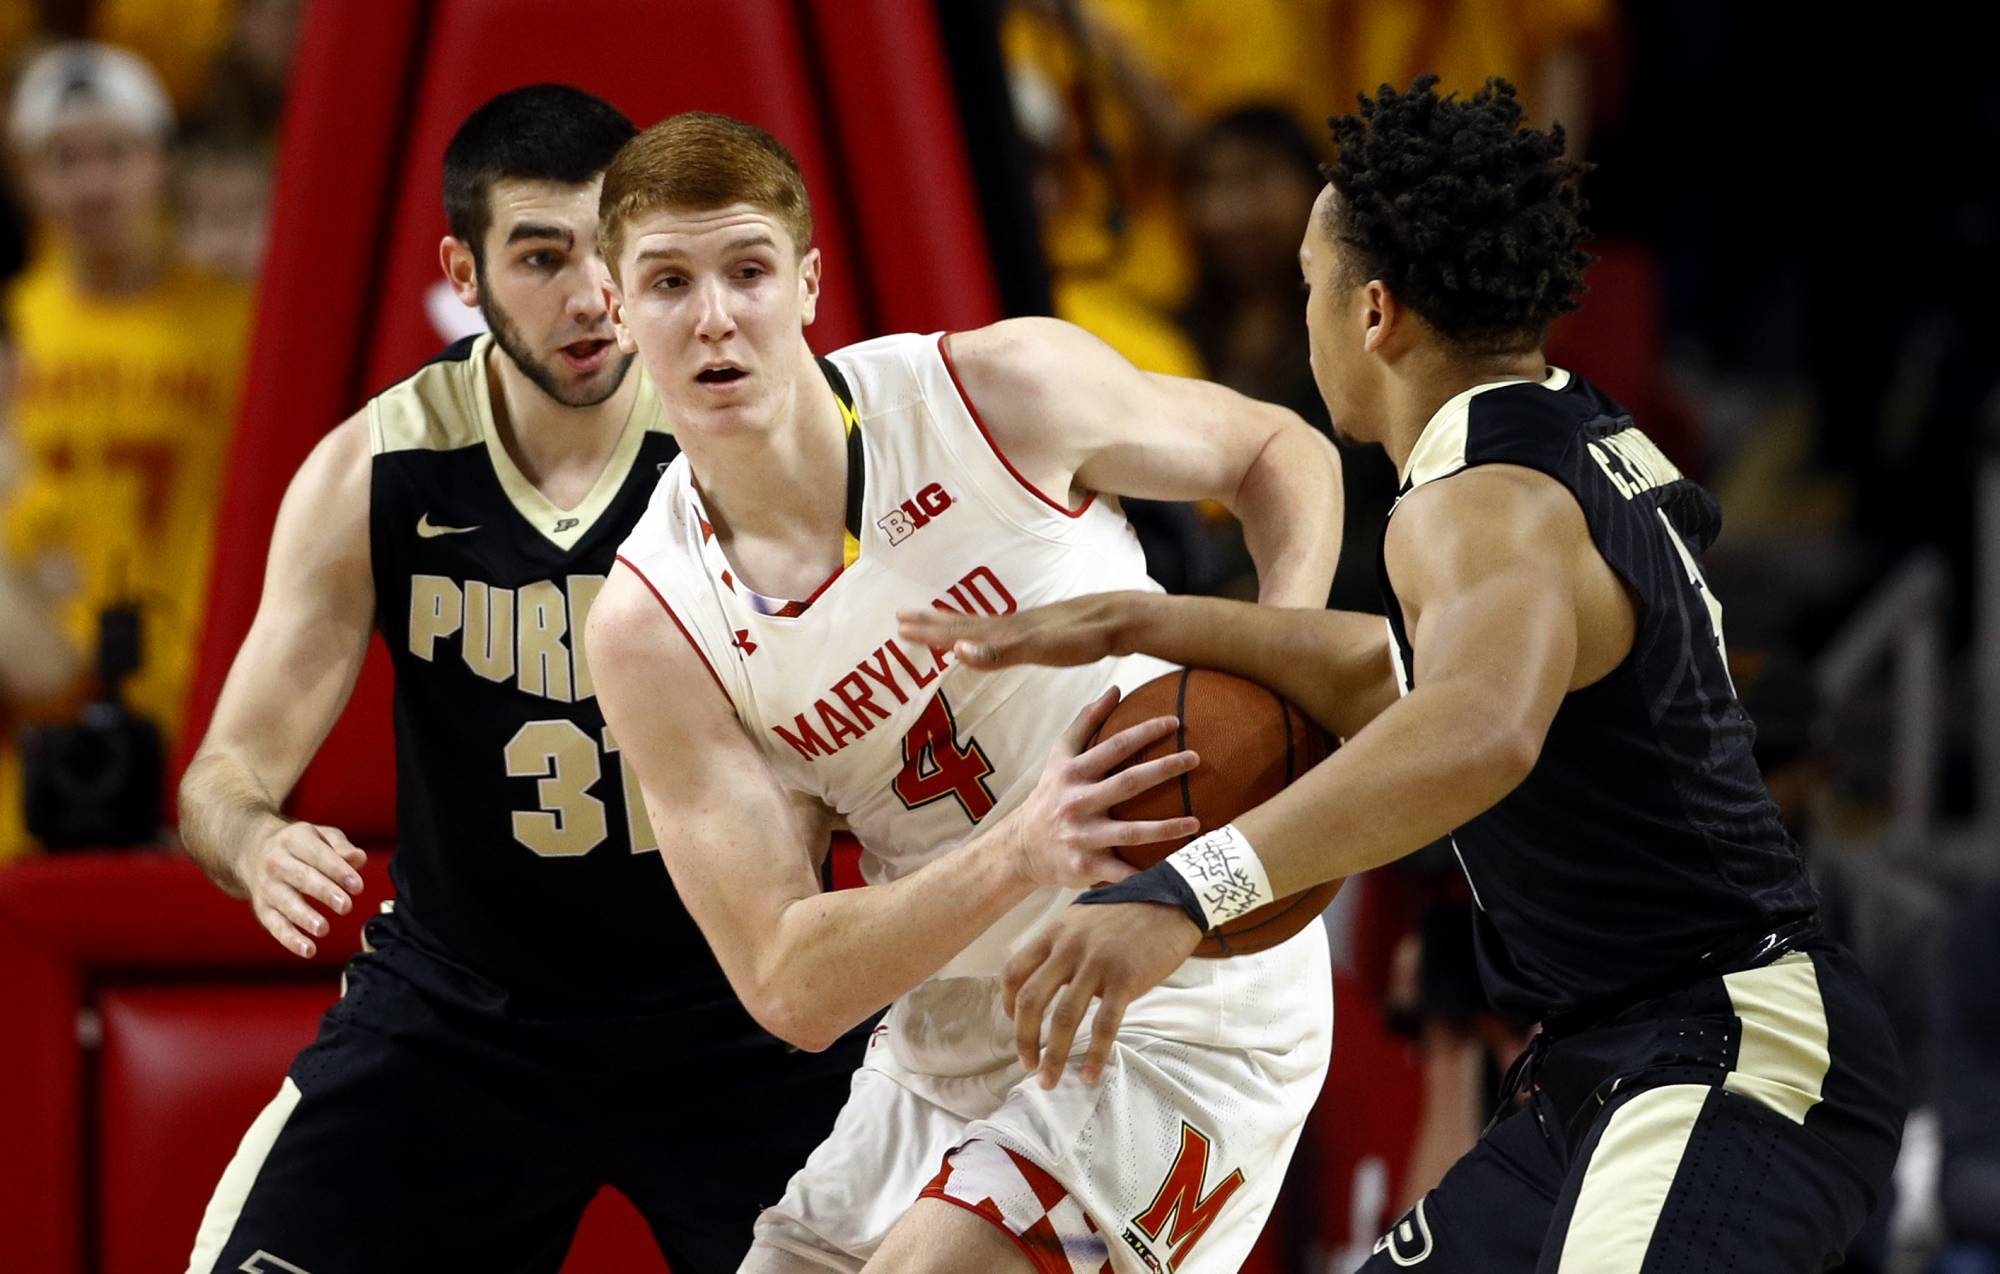 Huerter turning pro, leaving Maryland after 2 seasons | WTOP